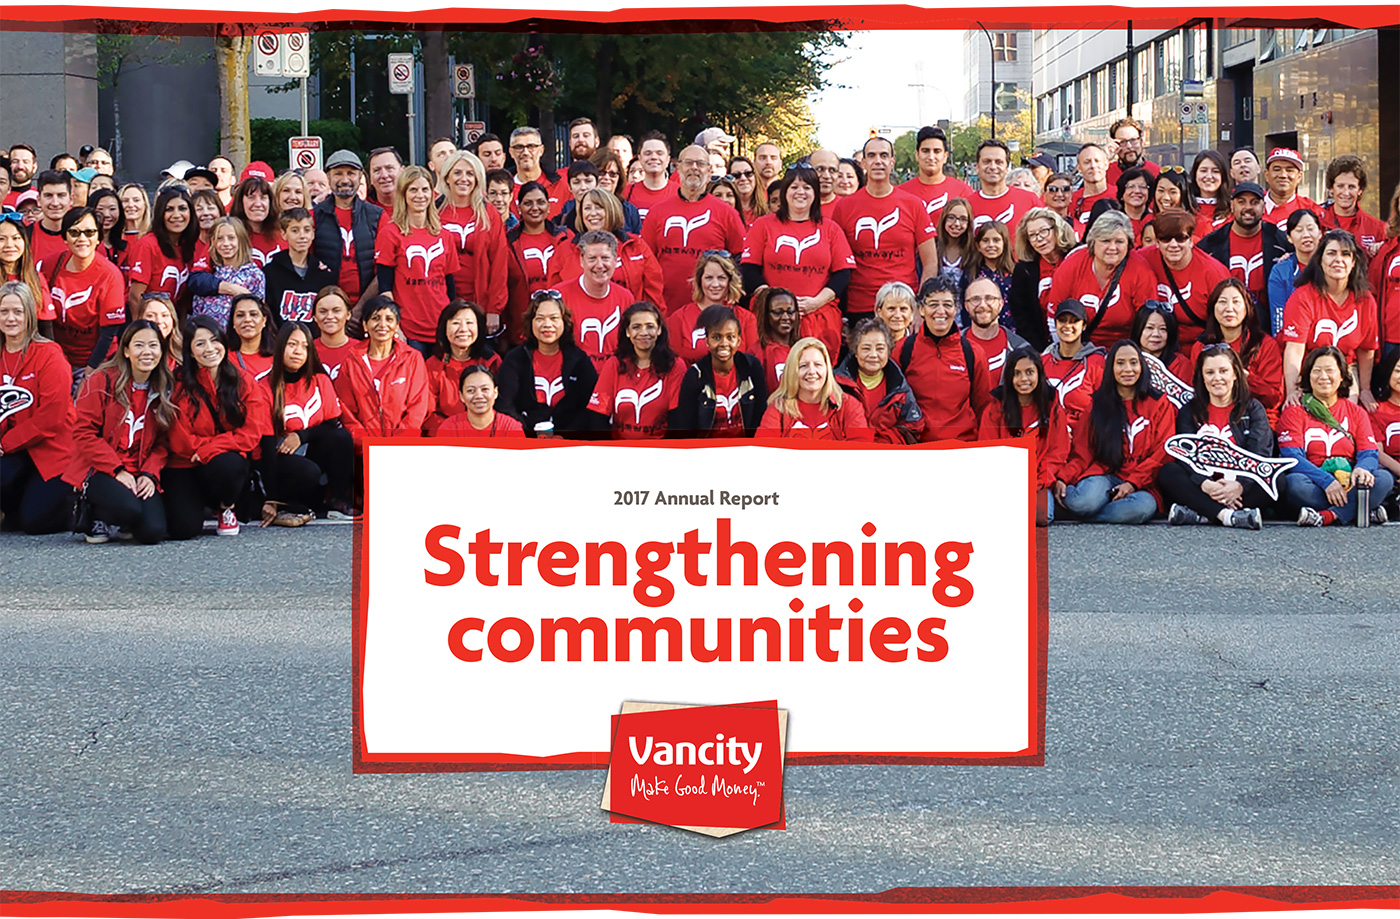 Vancity Leads on Diversity & Inclusion/Upper Columbia Co-op Council News